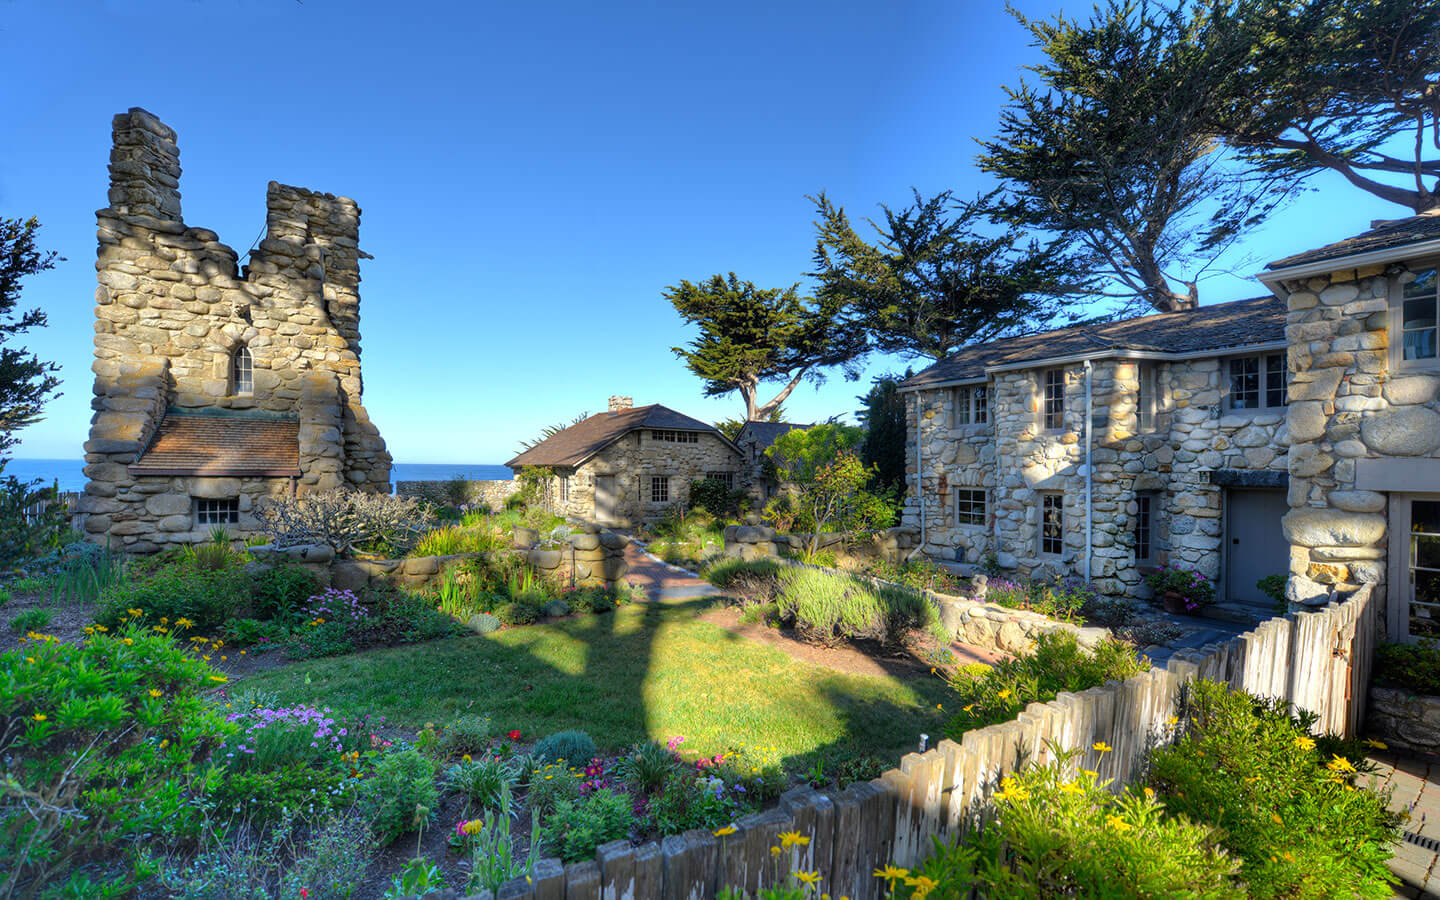 Explore the Best of the Carmel Art Scene Museums More